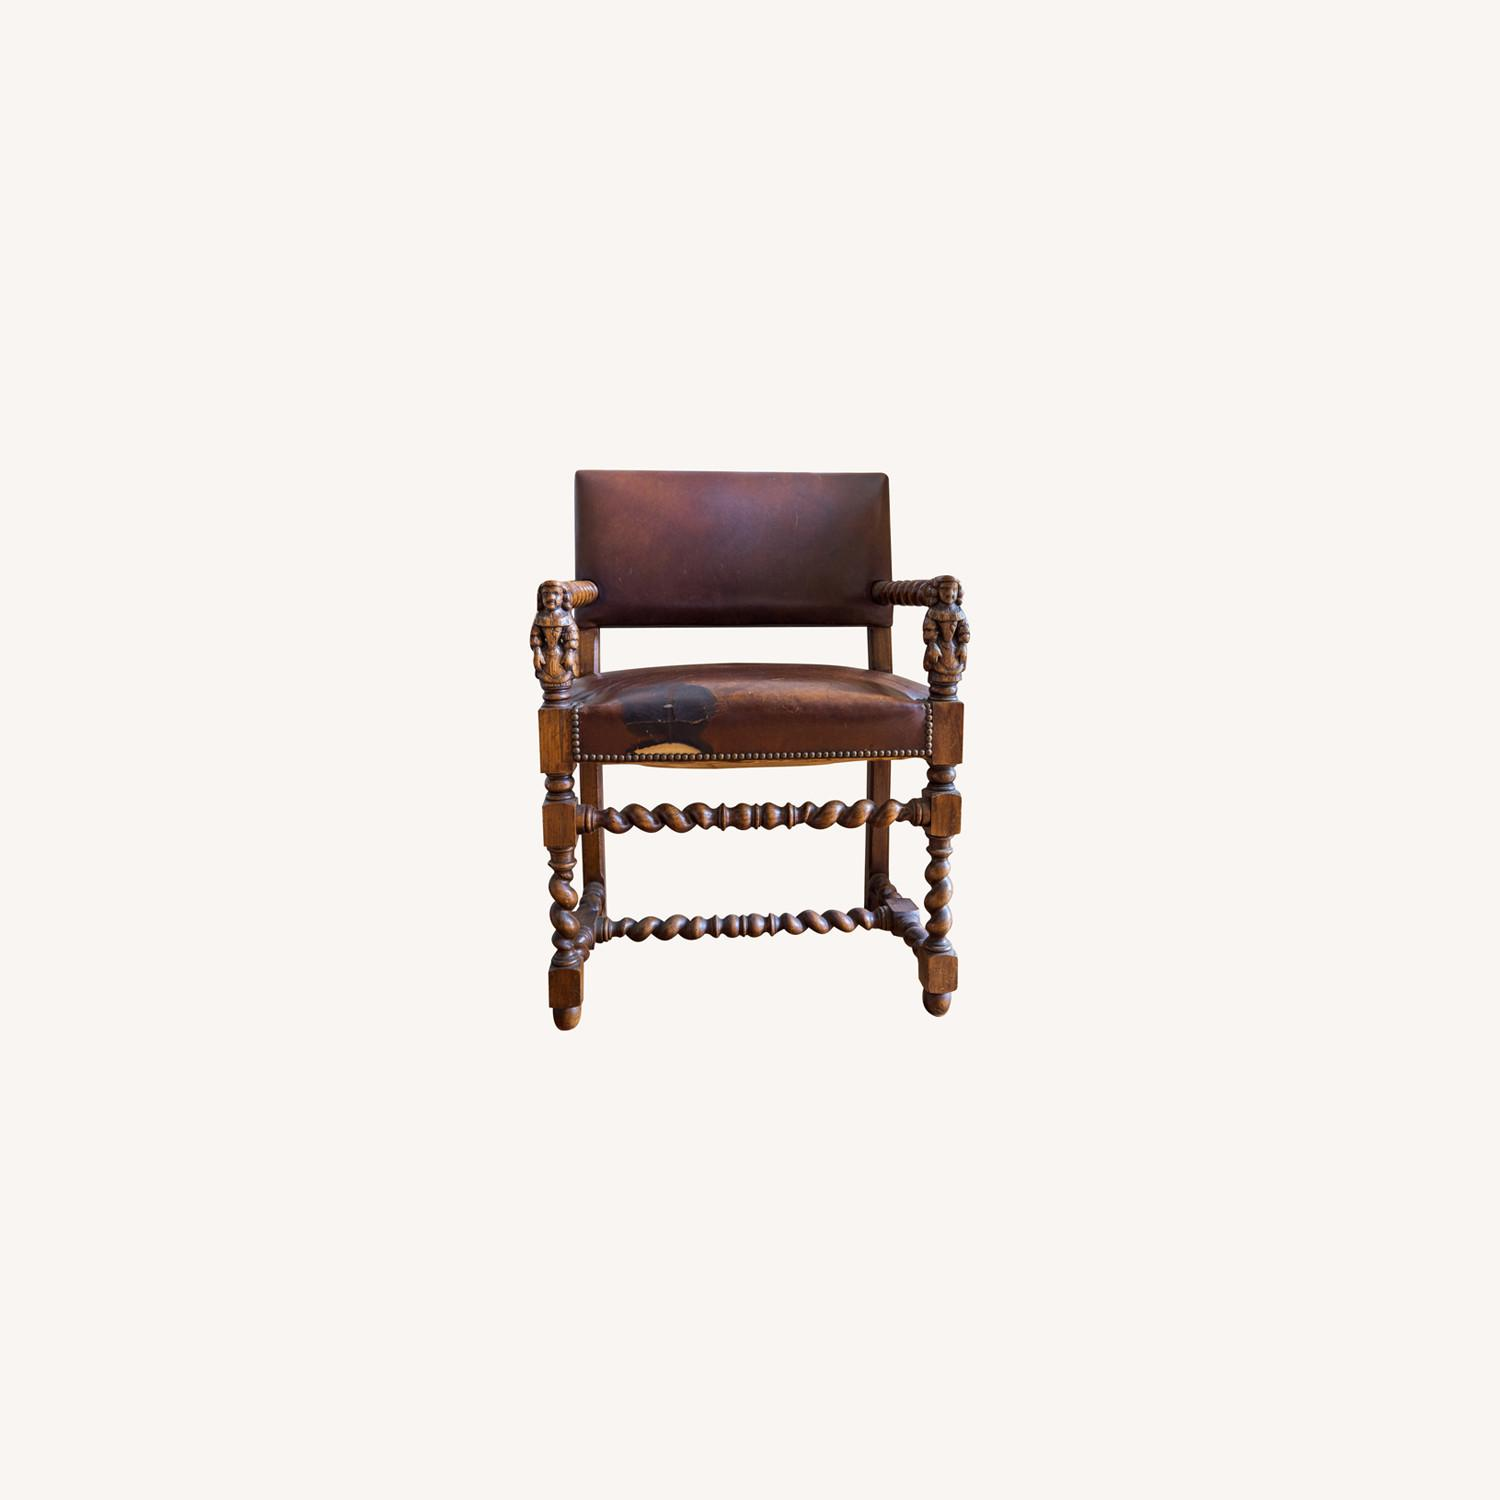 Wooden Antique Chair with Carved Men - image-0